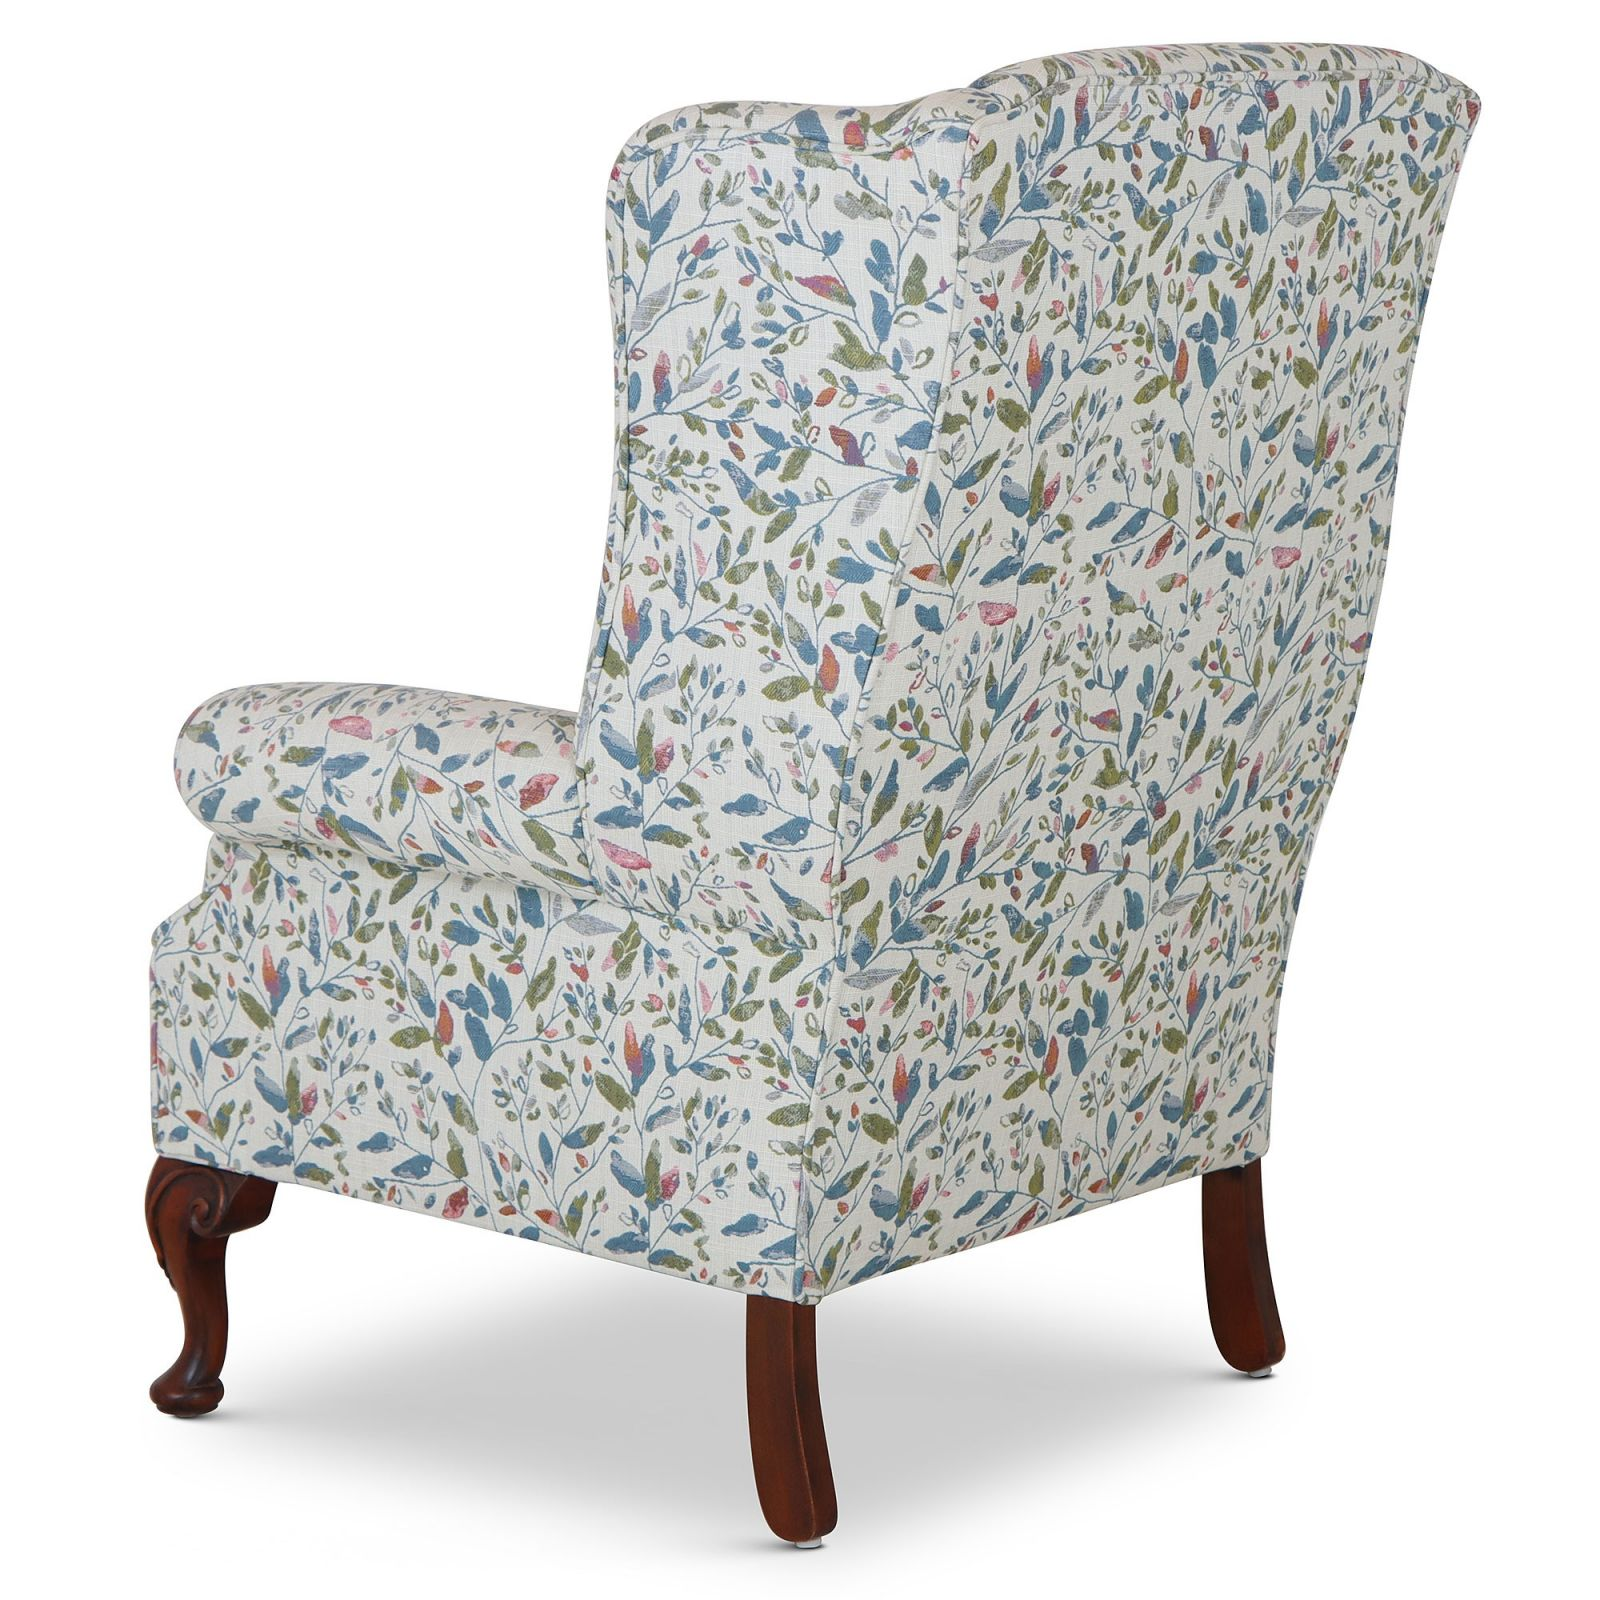 Blandford wing chair in floral fabric